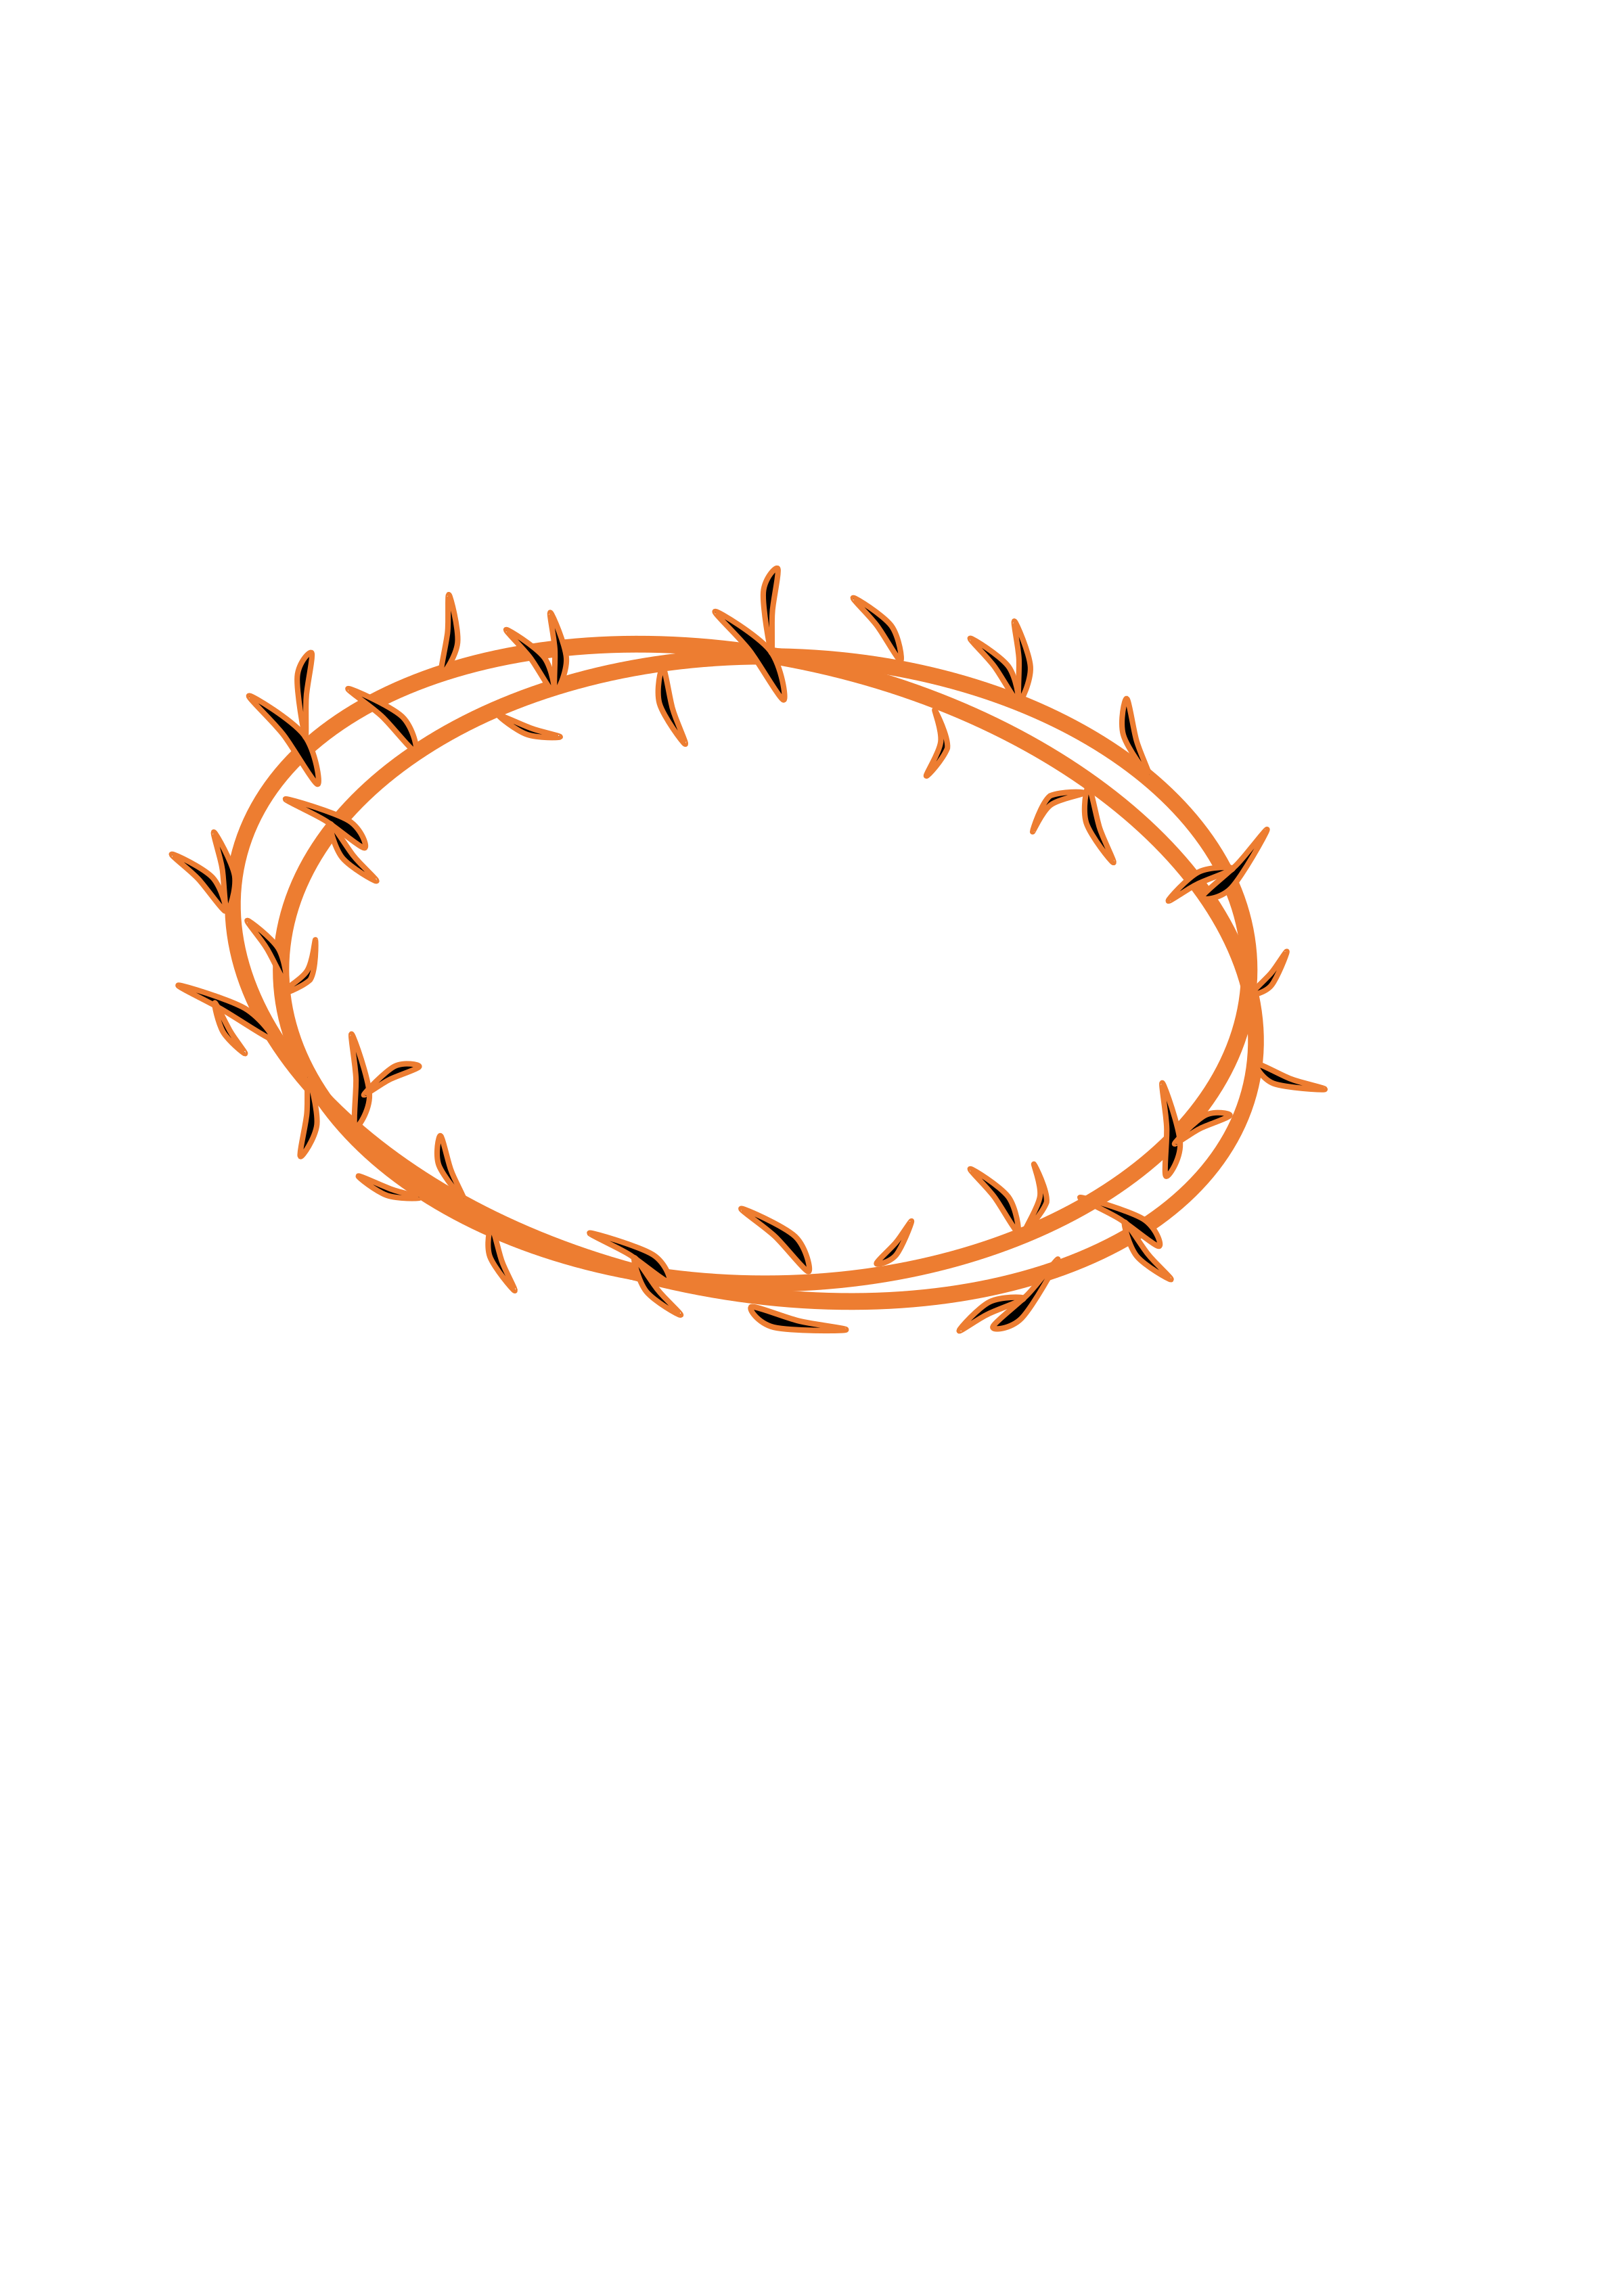 Crown of thorns transparent background clipart stock Or thorns composed Icons PNG - Free PNG and Icons Downloads stock